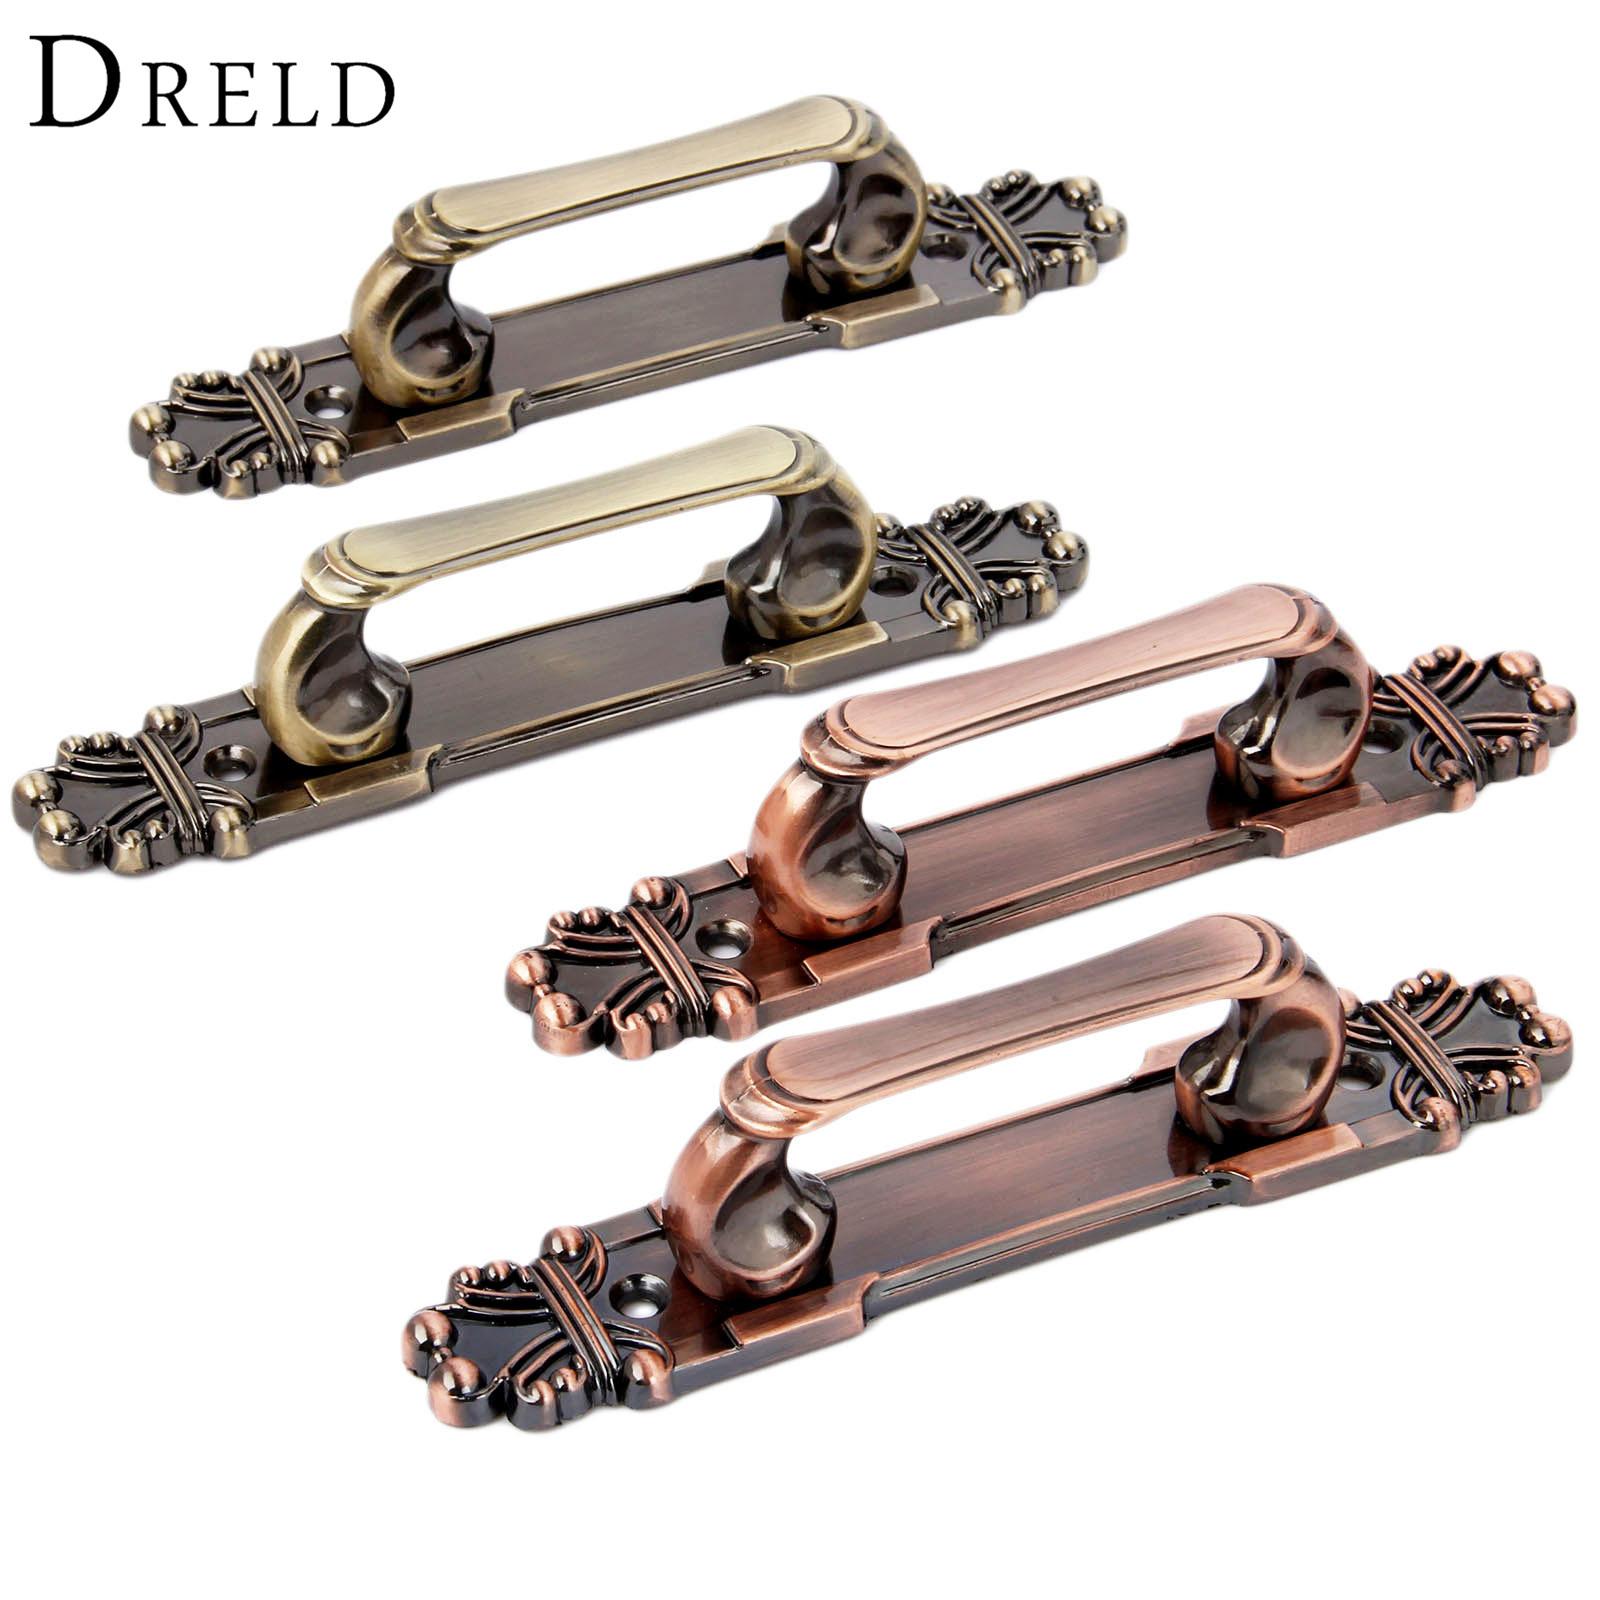 DRELD 2Pcs Antique Furniture Handles Zinc Alloy Door Pull Handle Vintage Drawer Cabinet Knobs and Handles Kitchen Furniture Knob free shipping 2pieces zinc alloy furniture handle european antique kitchen shoe cabinet door knob drawer pull hardware part